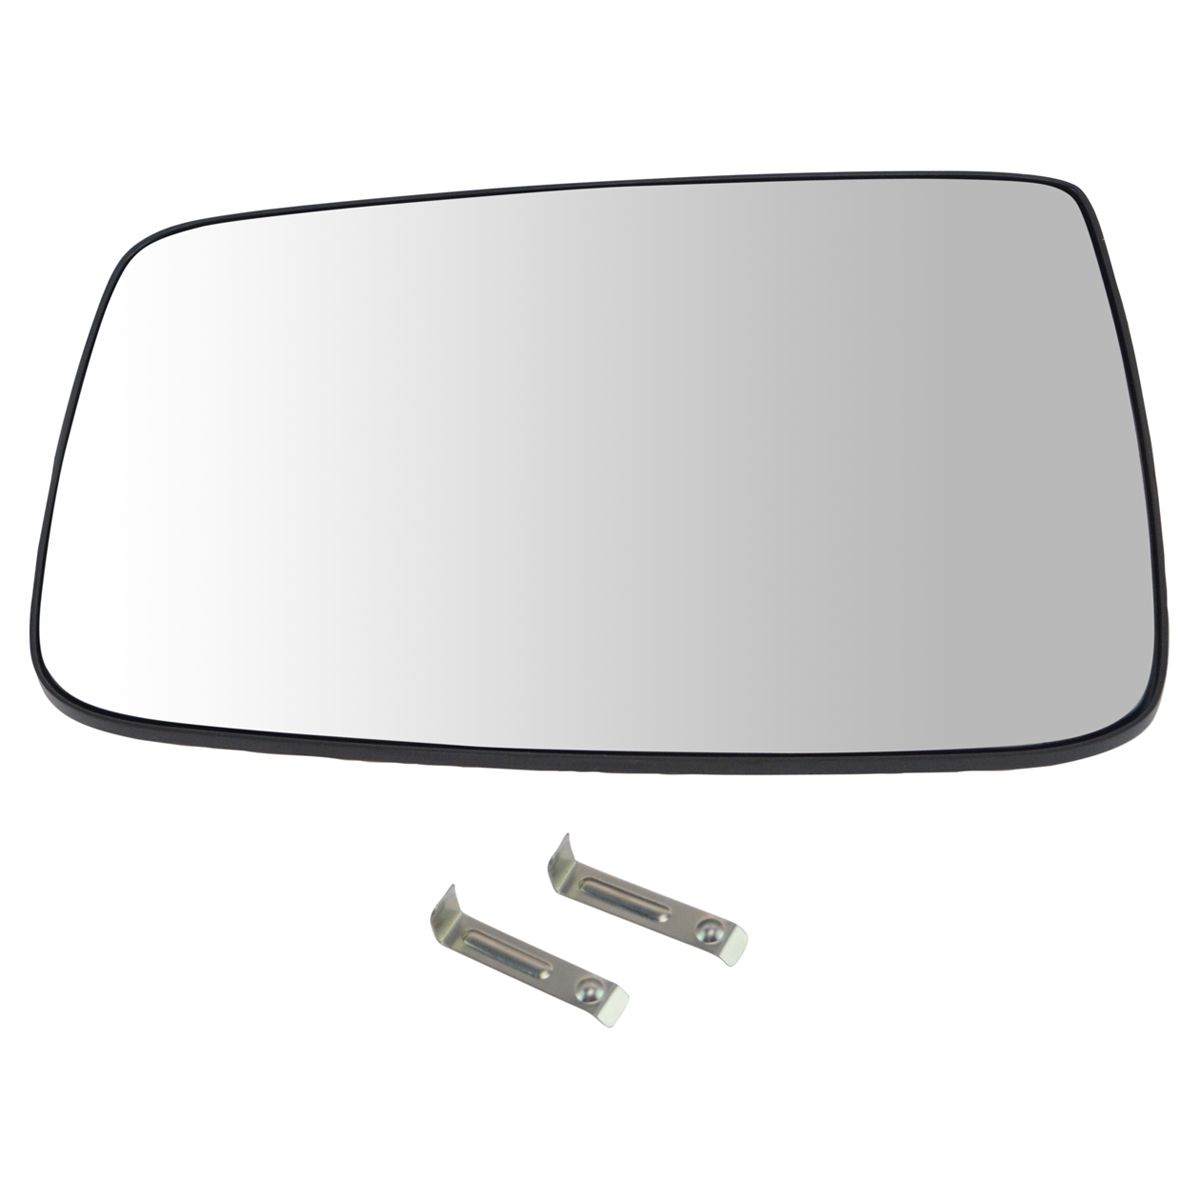 NEW Mirror Glass WITH BACKING 05-09 DODGE RAM TRUCK Driver Left Side